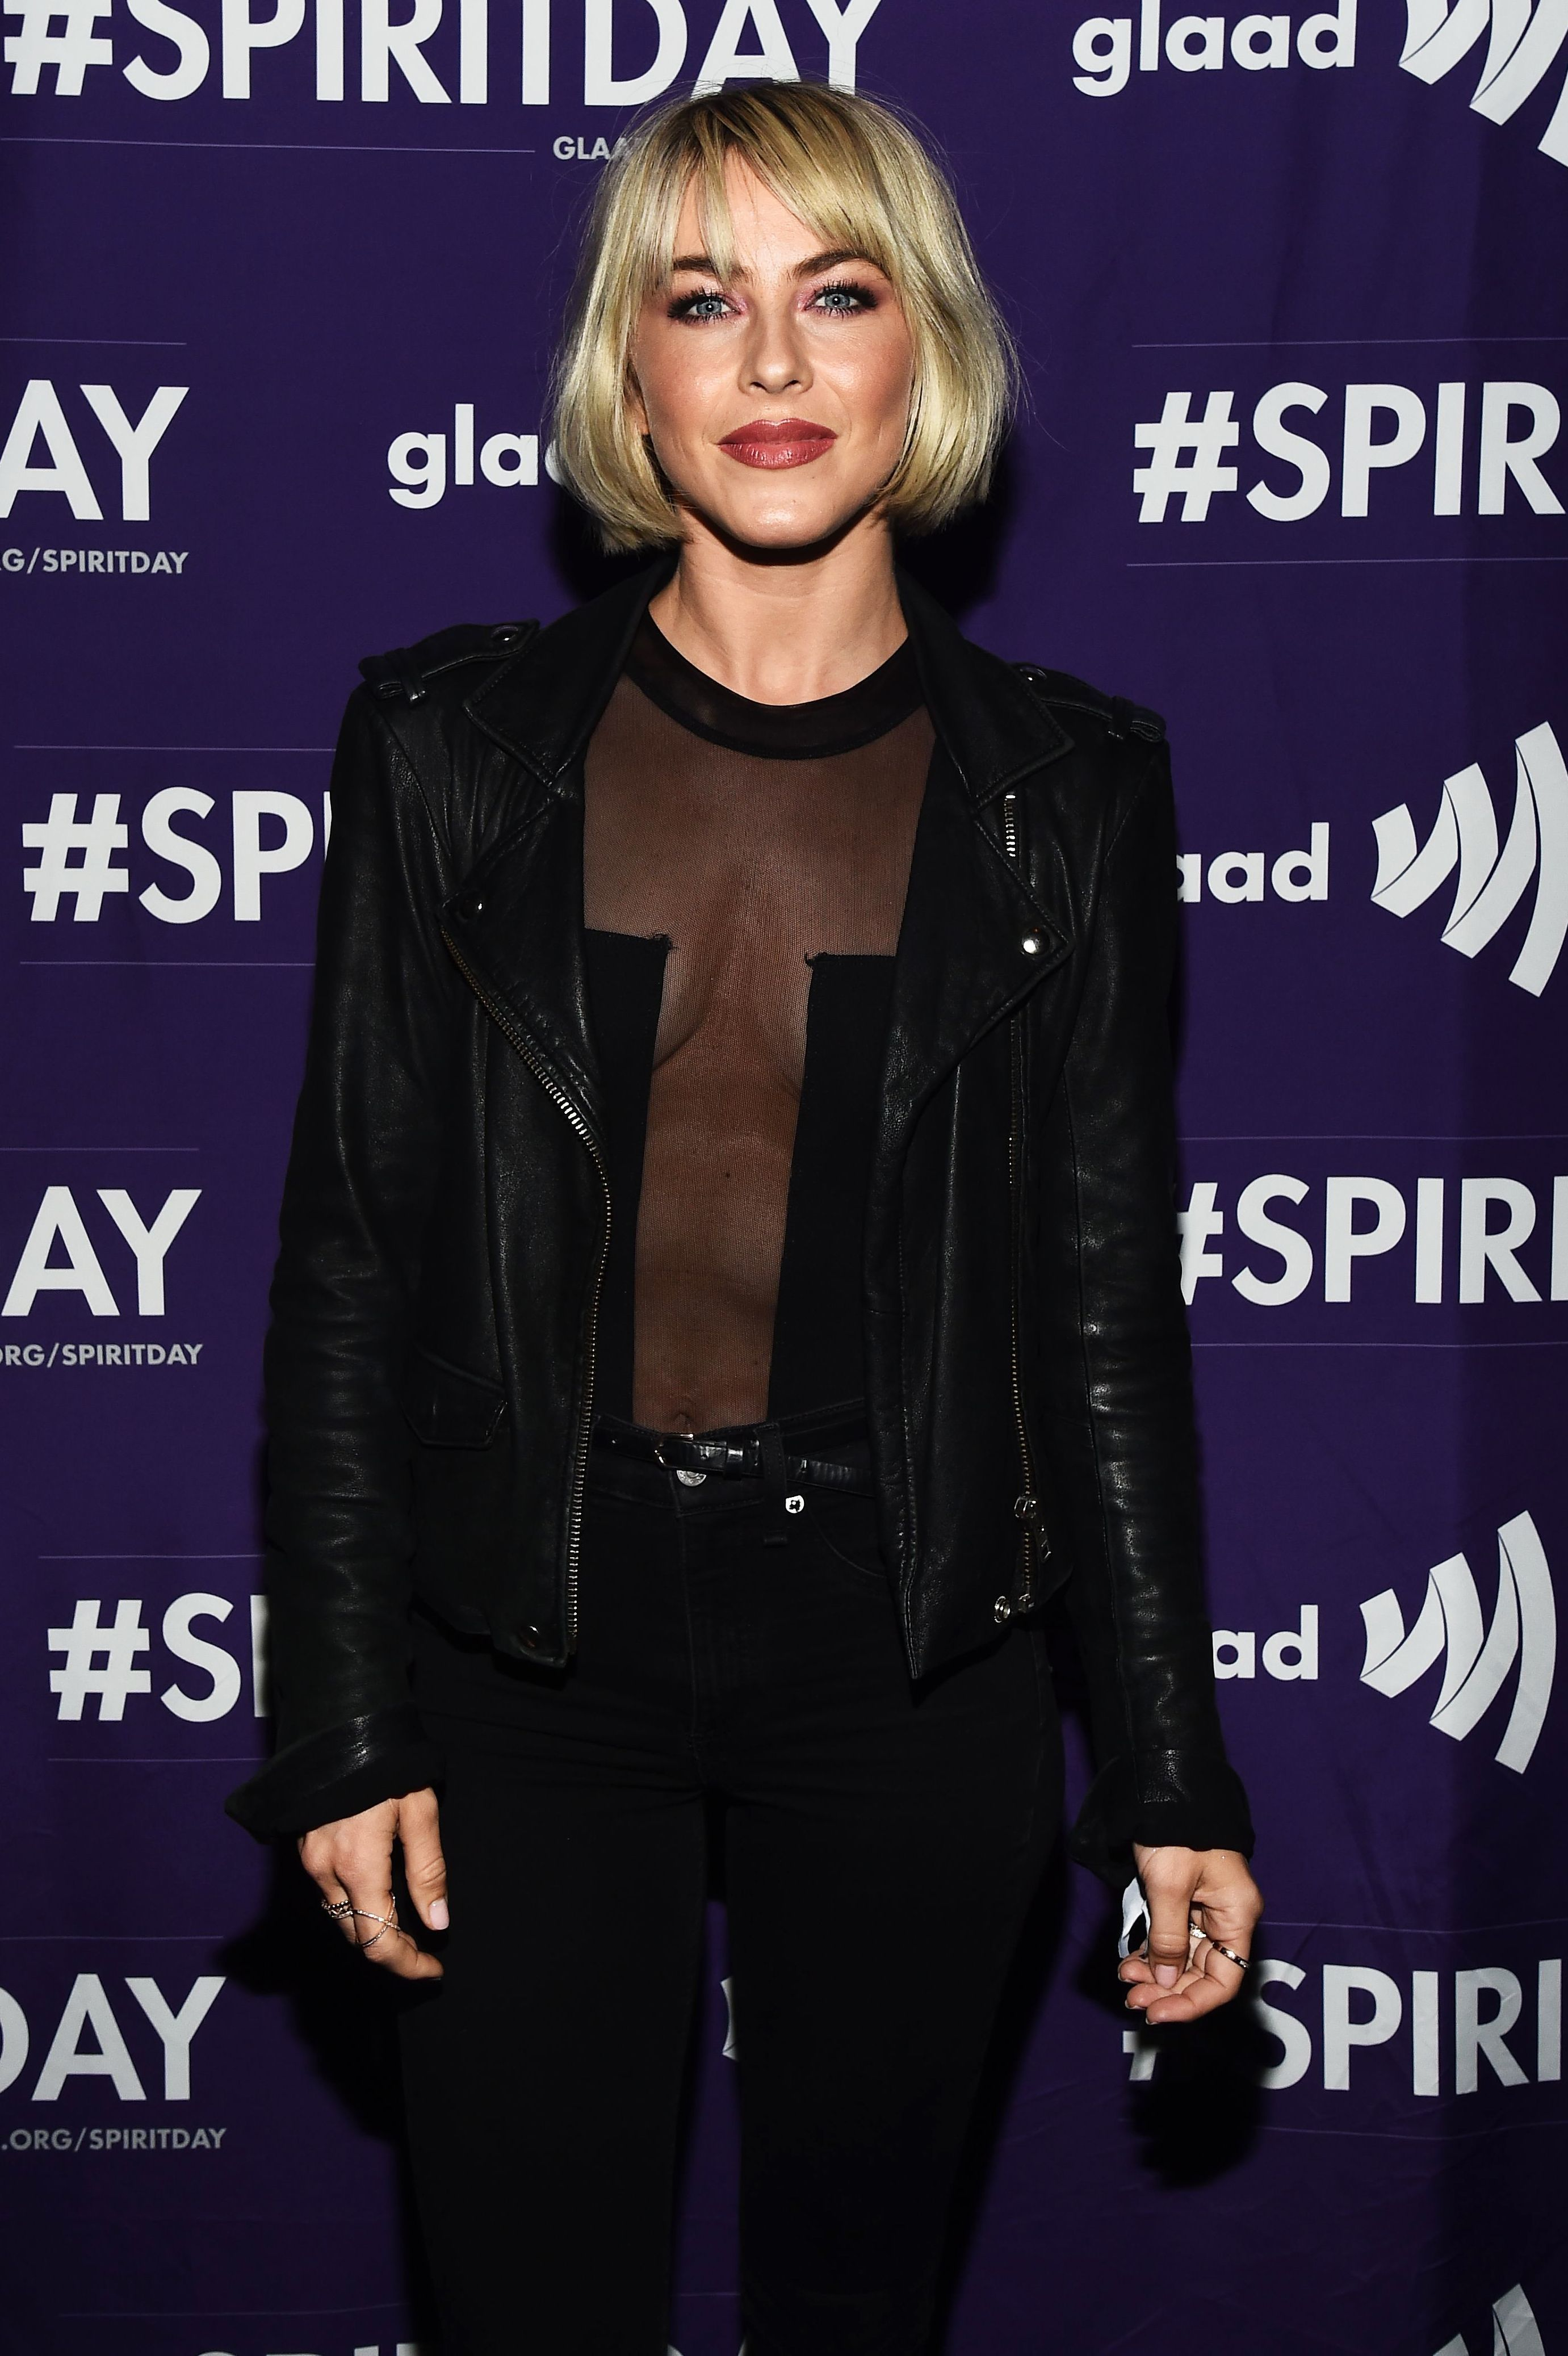 Julianne Hough attends the Beyond GLAAD Spirit Day concert in Los Angeles on Oct. 17, 2018.